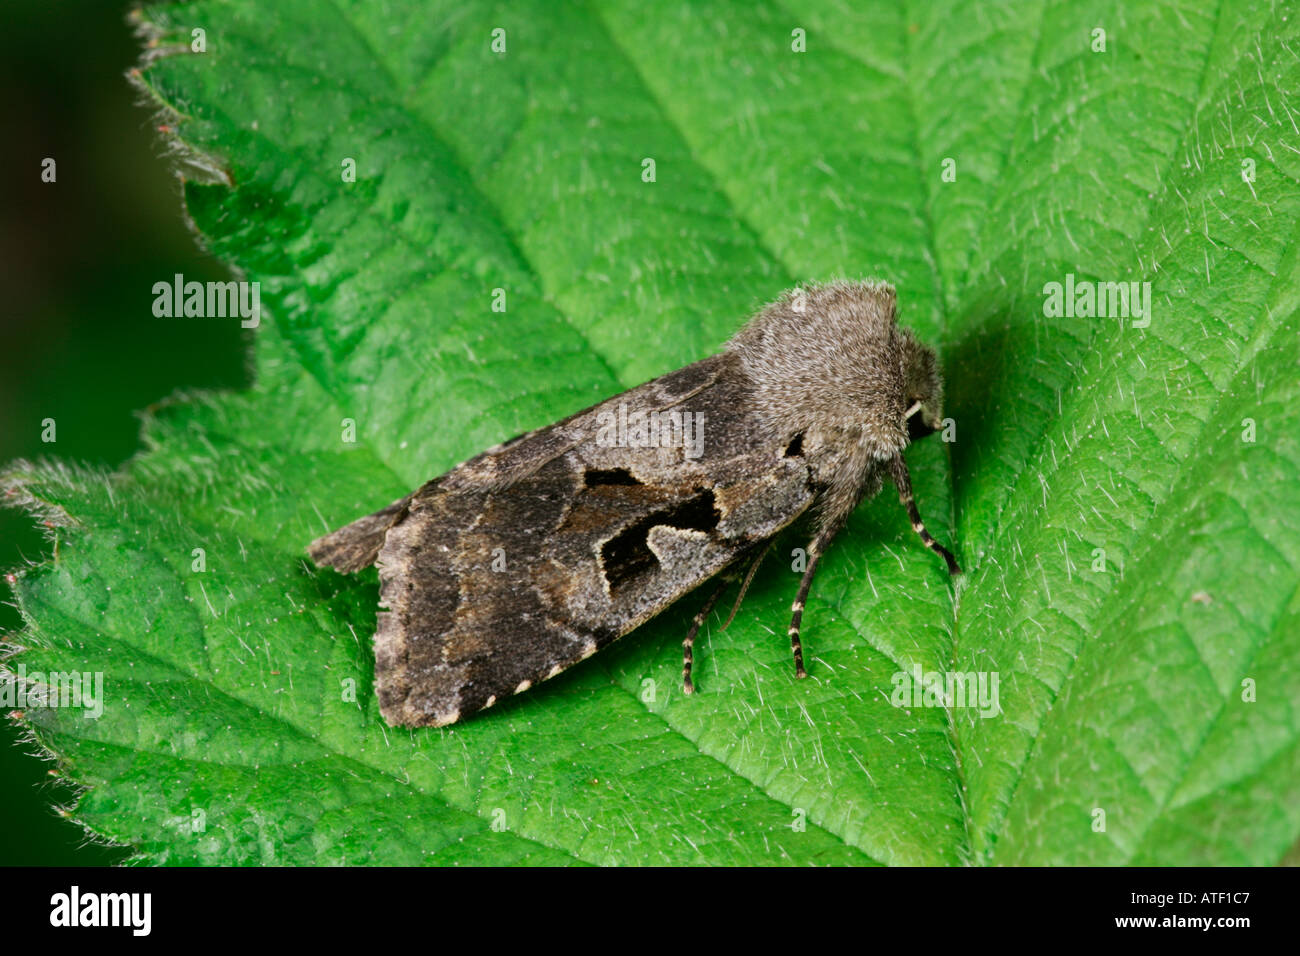 Hebrew Character Orthosia gothica at rest on leaf potton bedfordshire - Stock Image